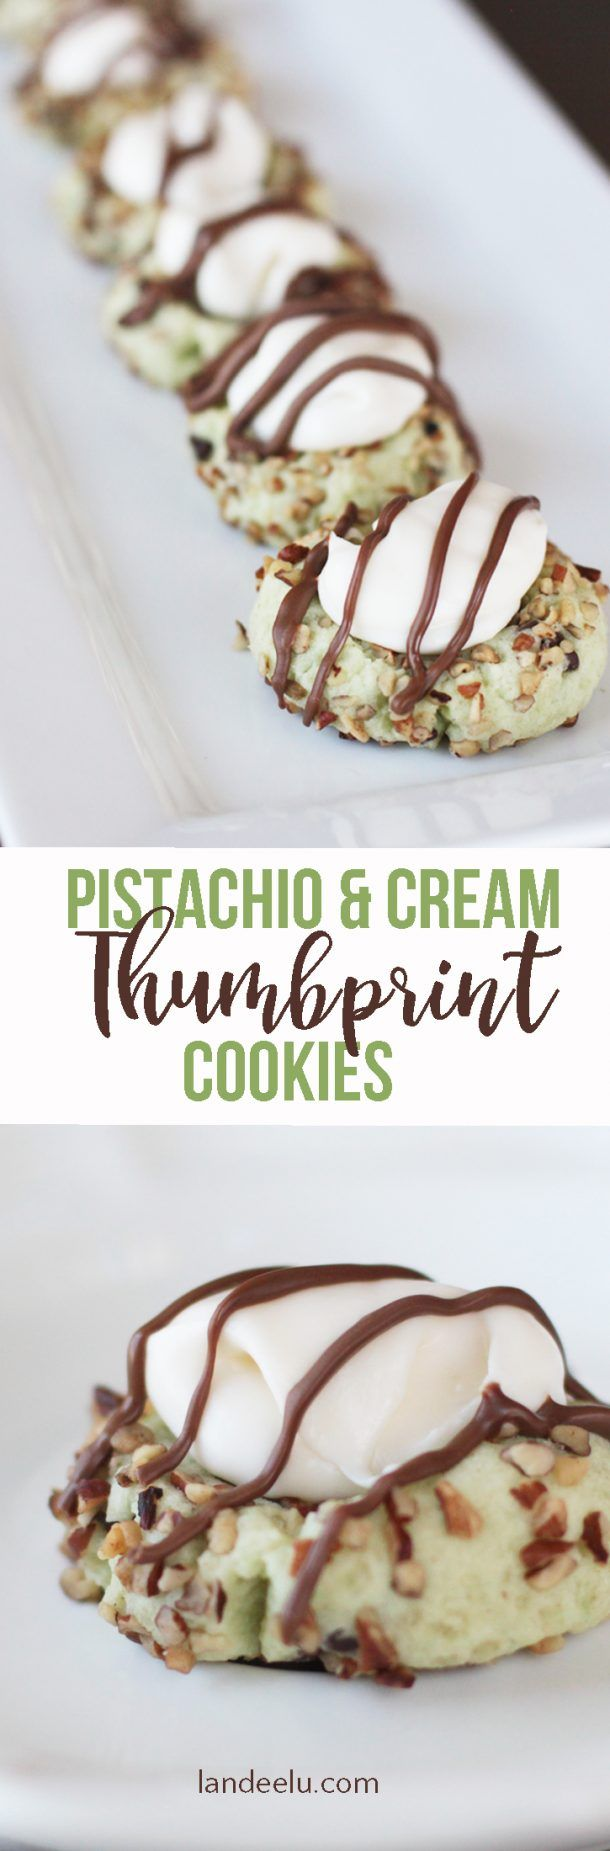 These Pistachio and Cream Thumbprint Cookies are amazing! They look fancy but are easy to make and delicious! Perfect for a party! #pistachio #pistachiocookies #pistachiothumbprintcookies #thumbprintcookies #pistachioandcream #cookies #easycookies